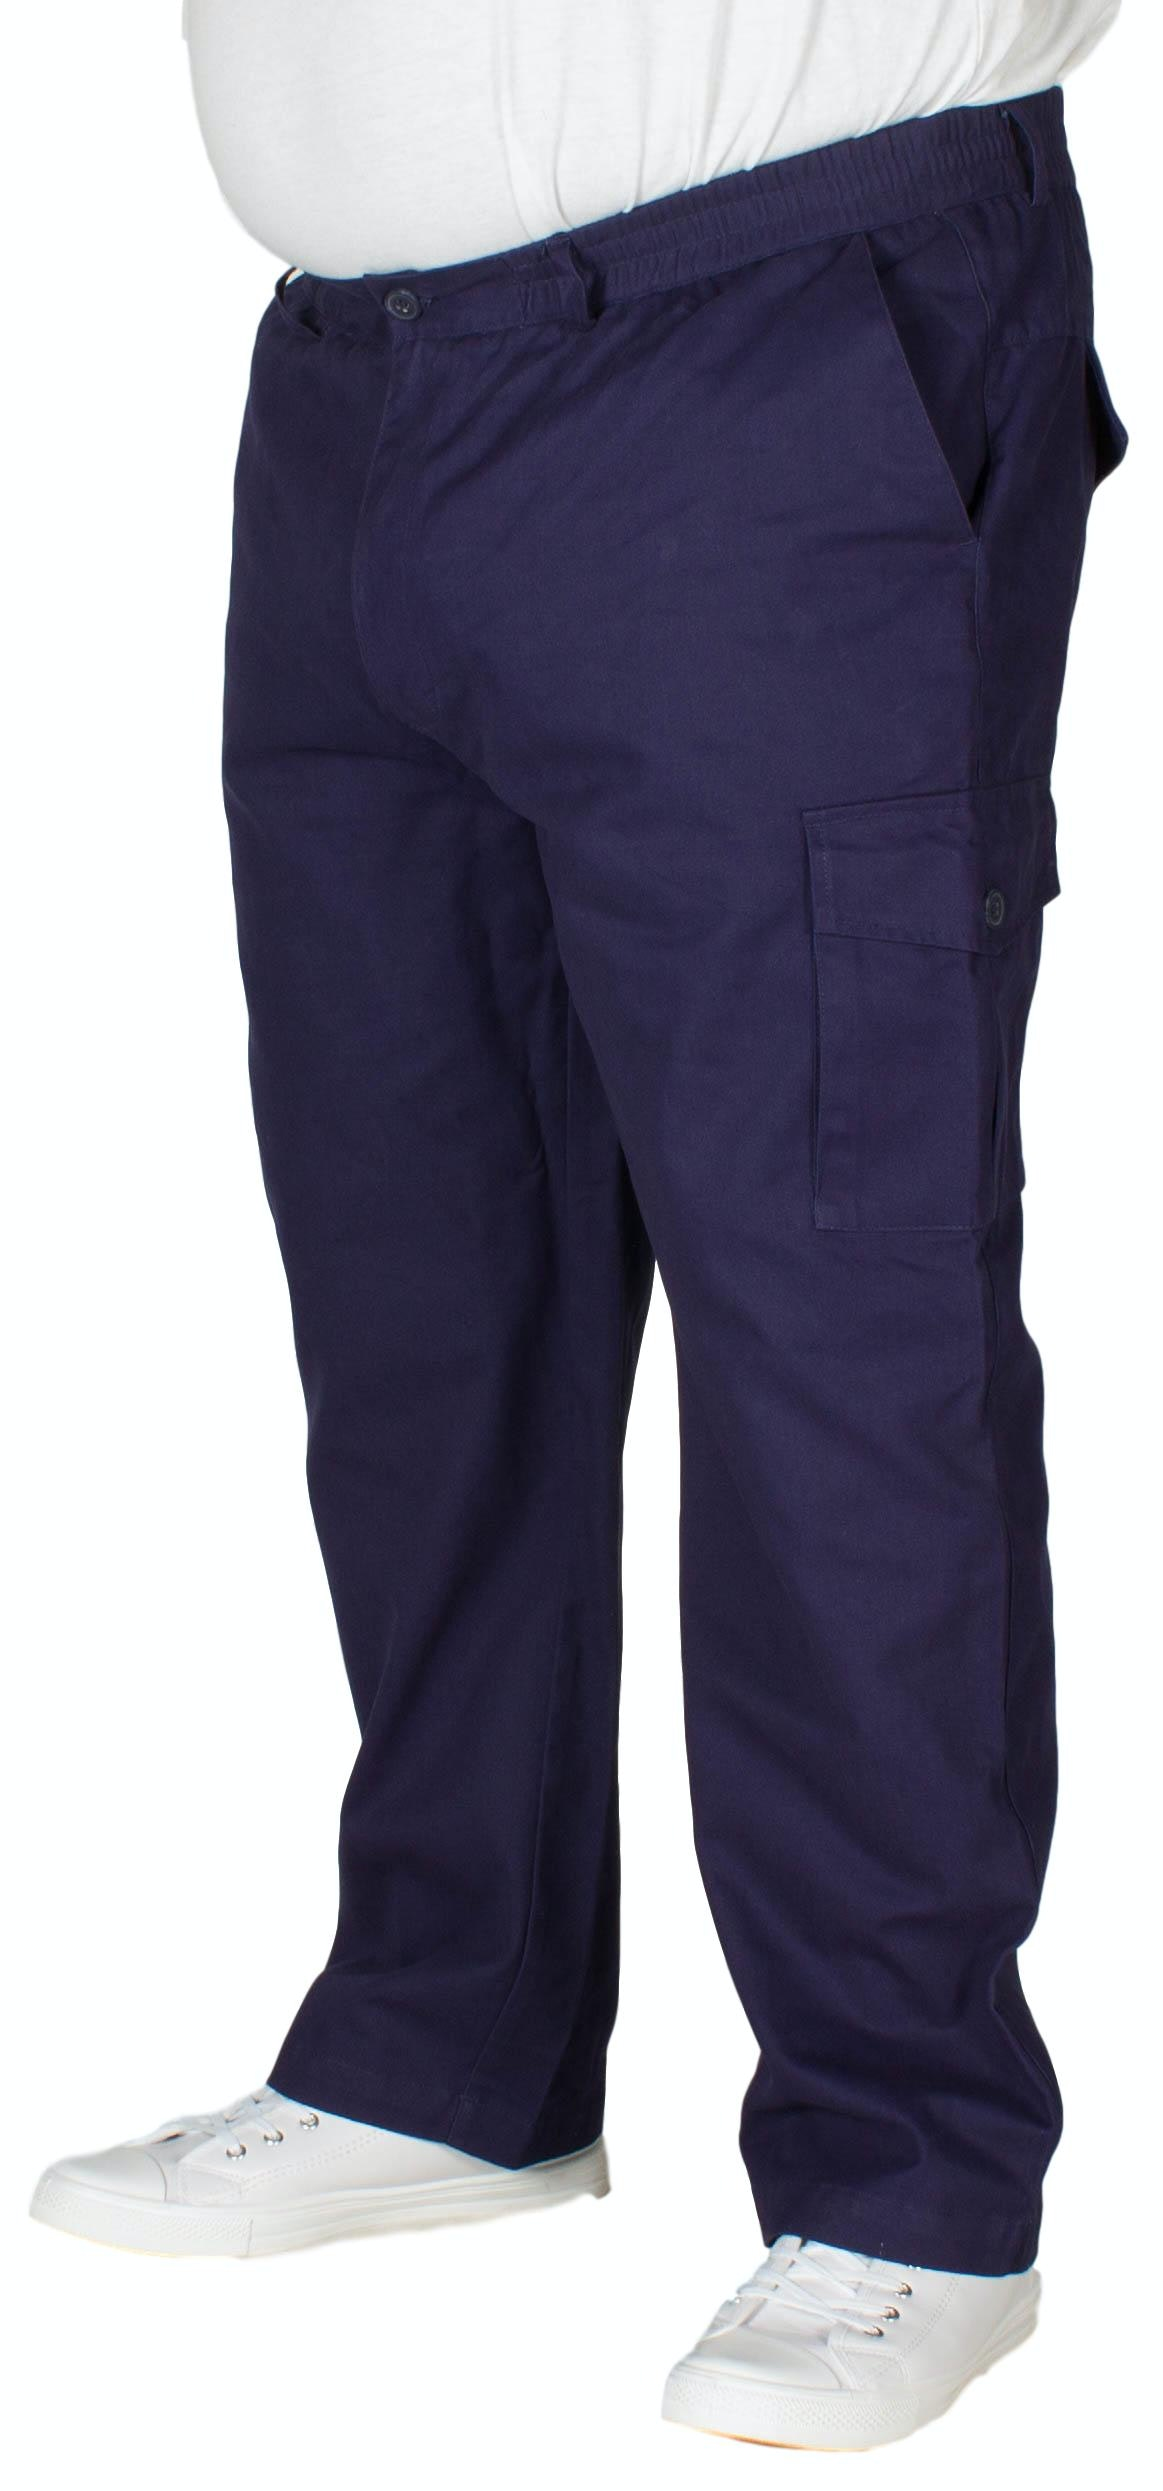 Bigdude Elasticated Waist Cargo Trousers Navy